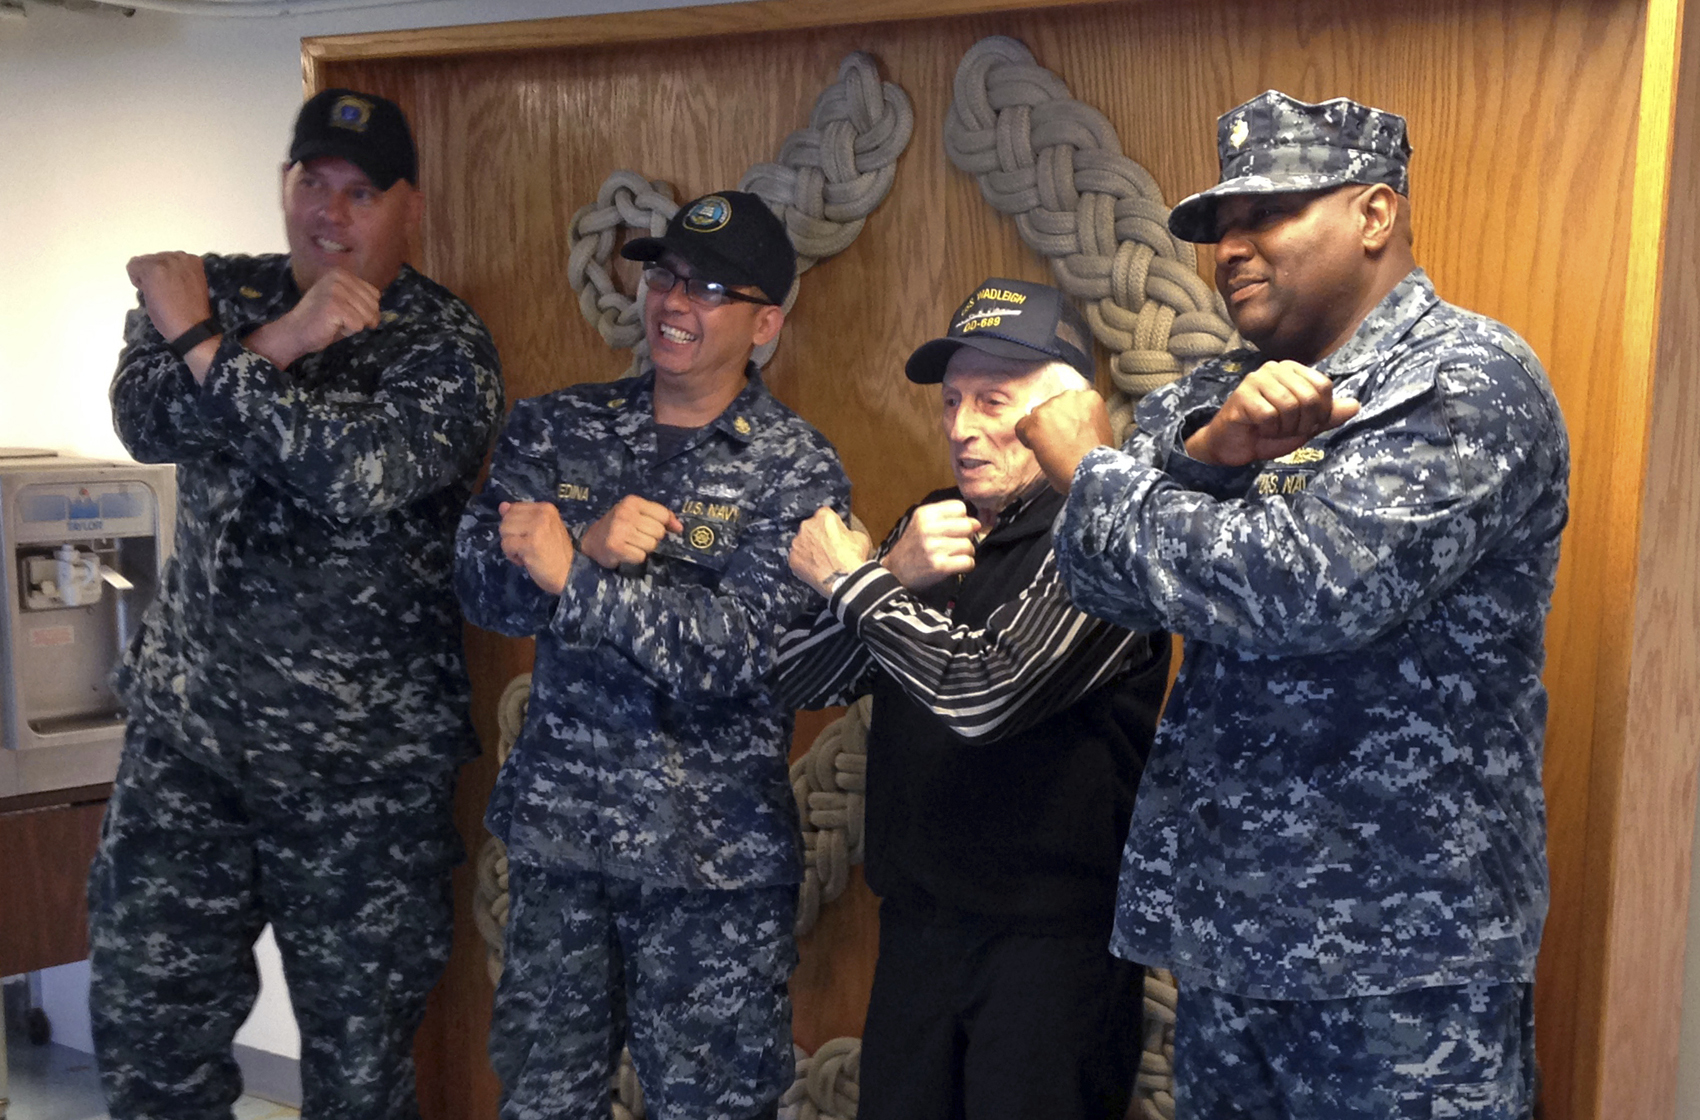 WWII veteran Edmund DelBarone, second from right, makes the U.S. Navy crossed anchors symbol with his arms while posing for a photograph at Naval Station Newport, in Newport, R.I., Thursday July 27, 2017. DelBarone, a 96-year-old World War II veteran, once dreamed of returning to a Navy installation to reminisce about his naval career, and help of a nonprofit it has become a reality. (Jennifer McDermott/AP)